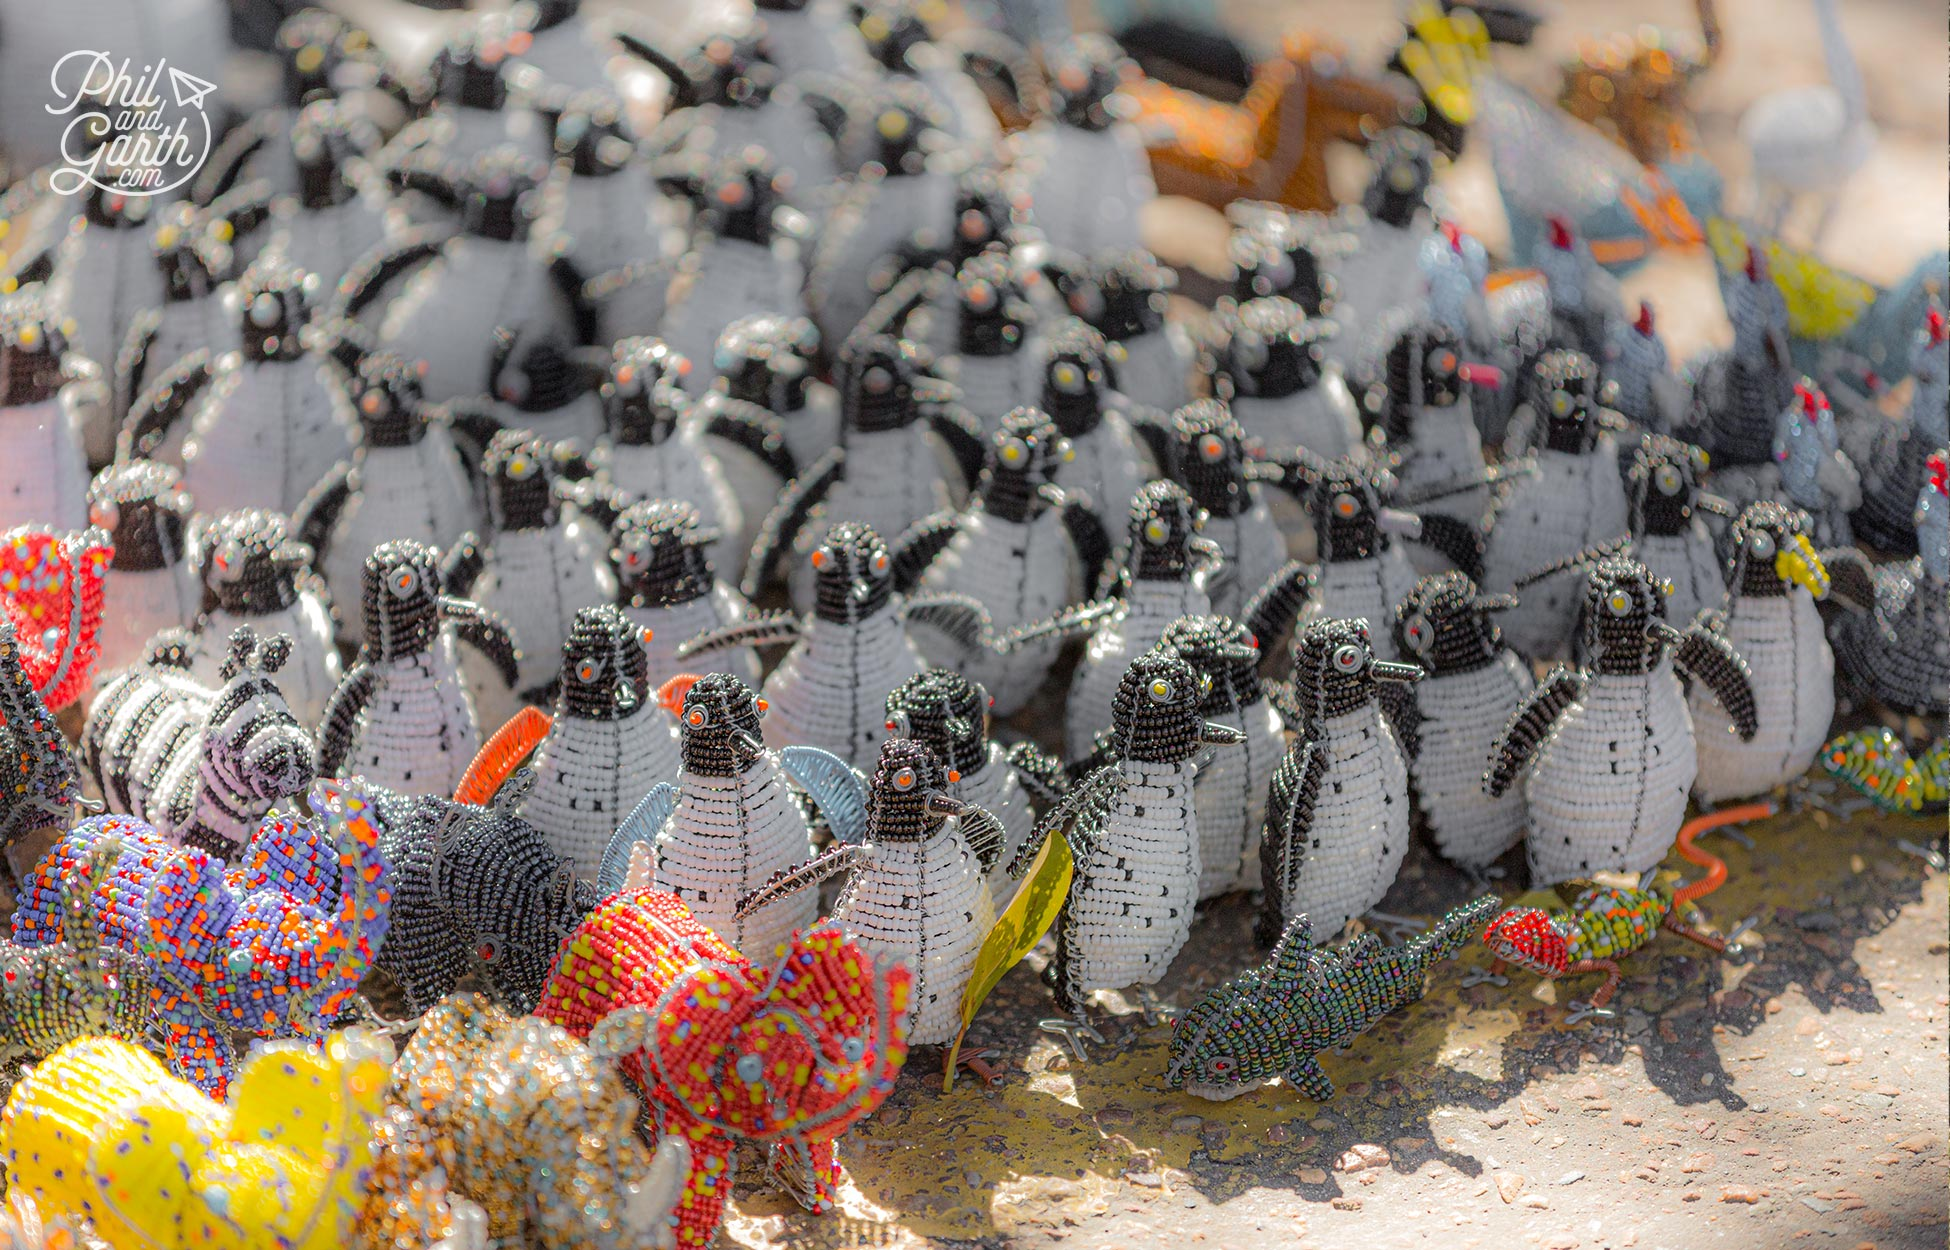 Loads of penguin themed souvenirs outside Boulders